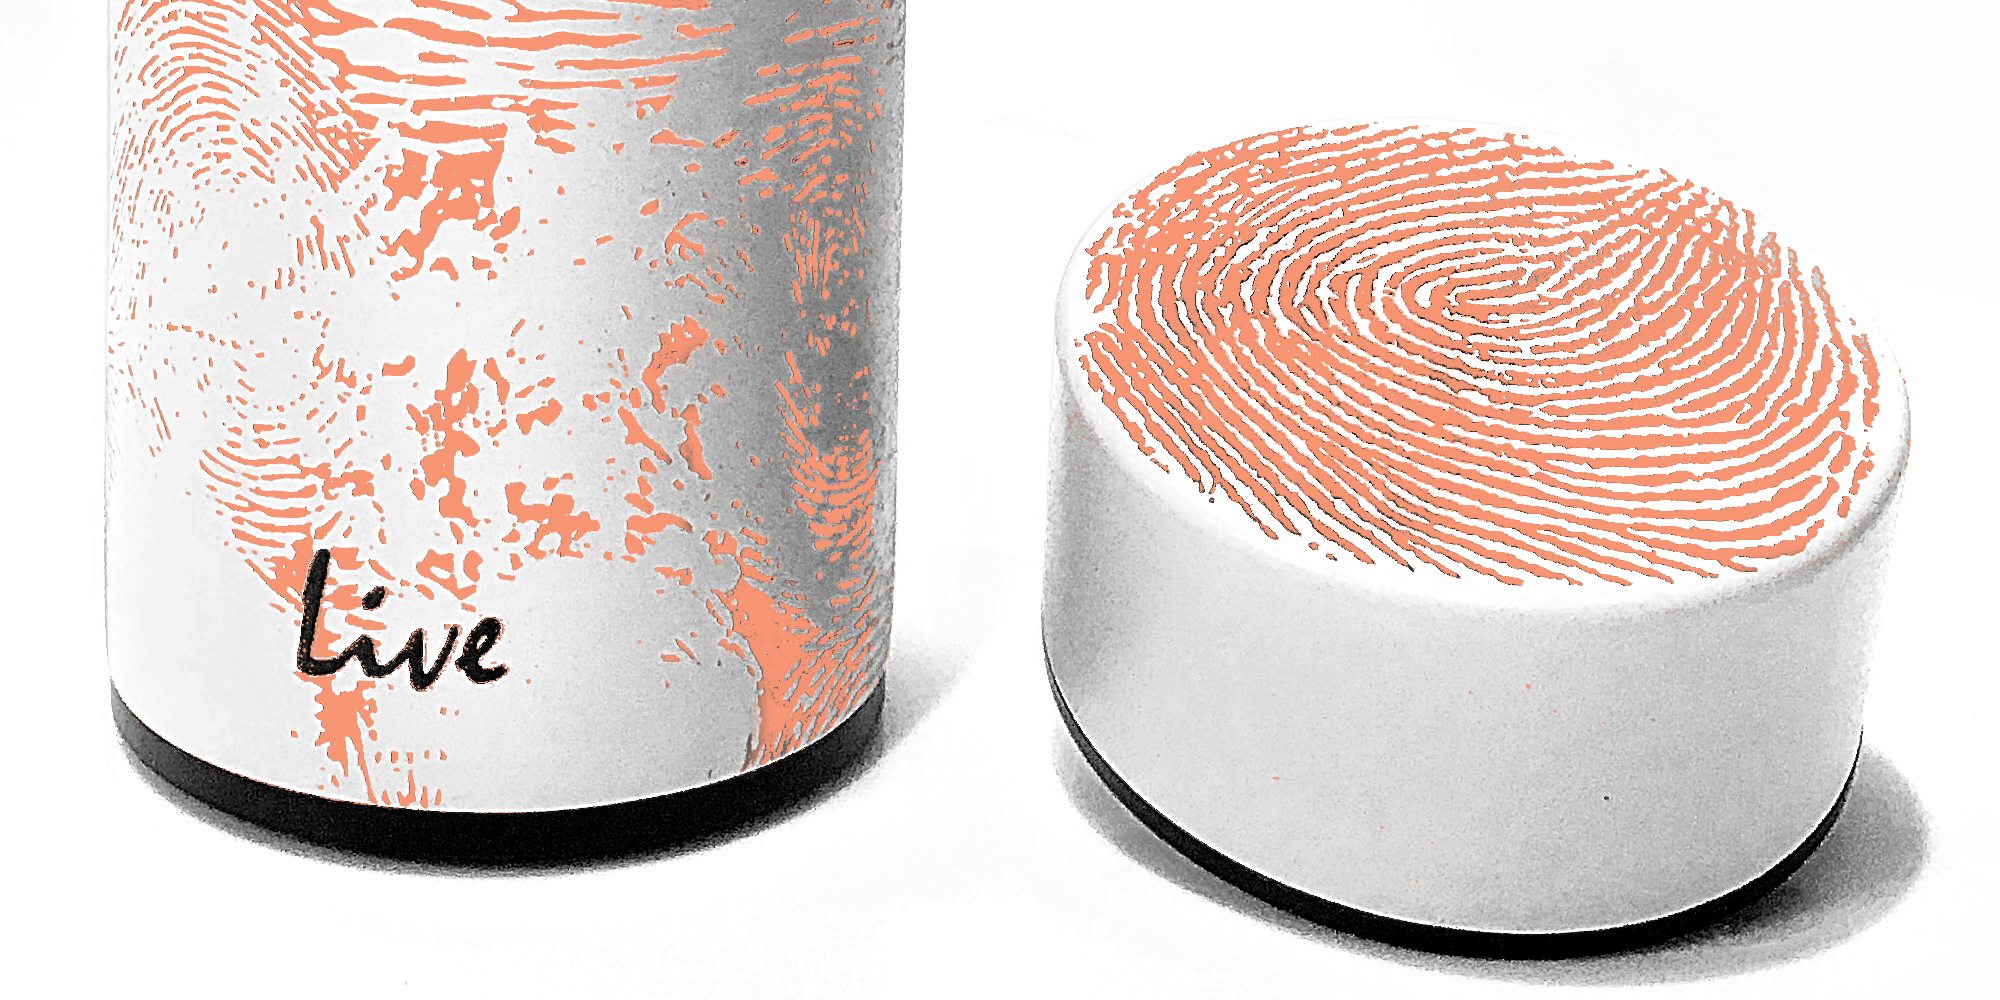 Cali Sunset_THUMBPRINT DESIGN_3 Features_Product Description Page_COBO Website.jpg